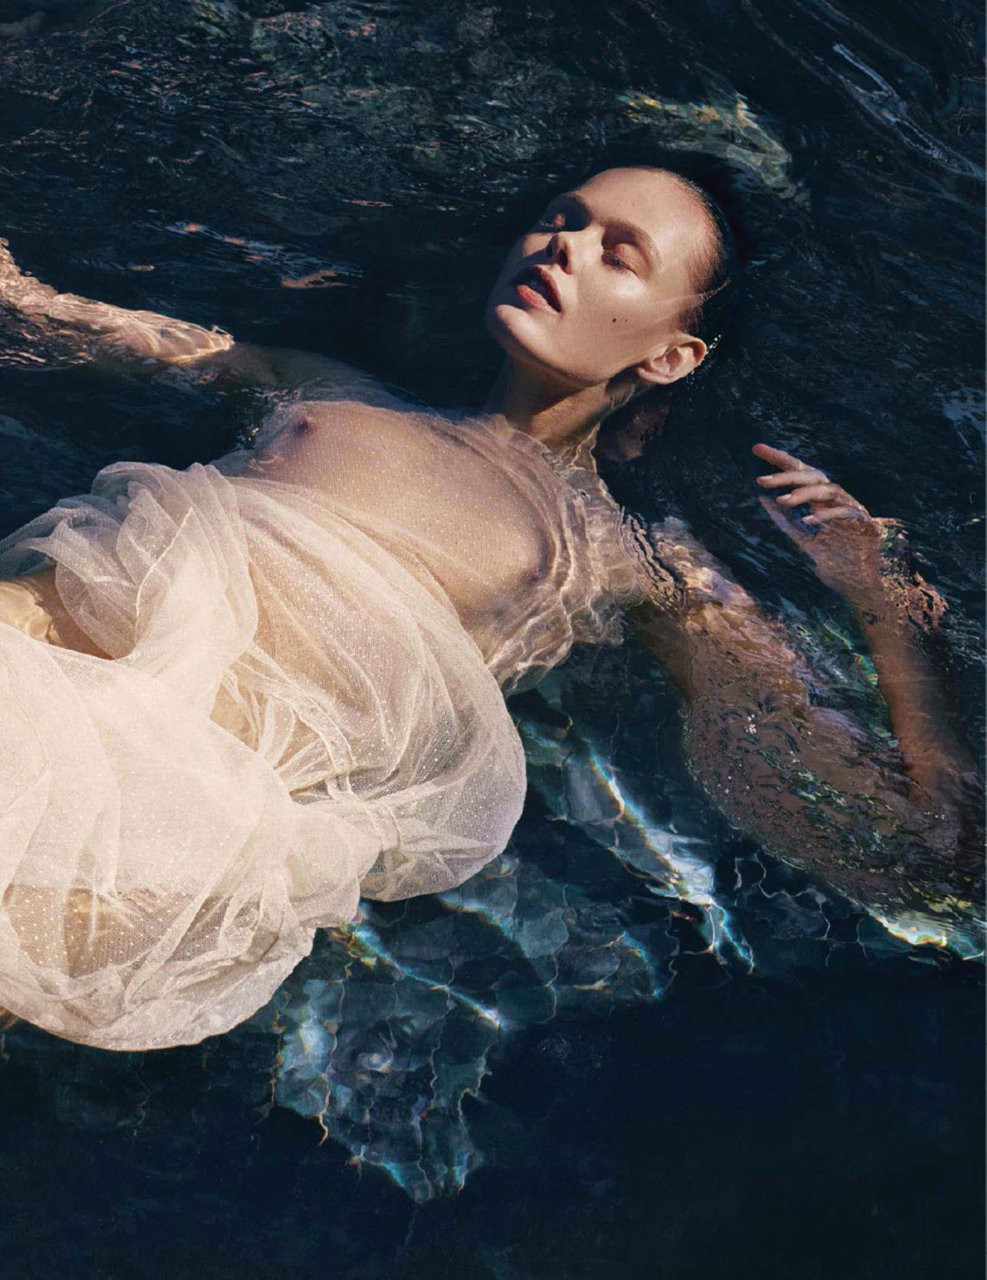 Frida Gustavsson Topless 01 TheFappening.nu